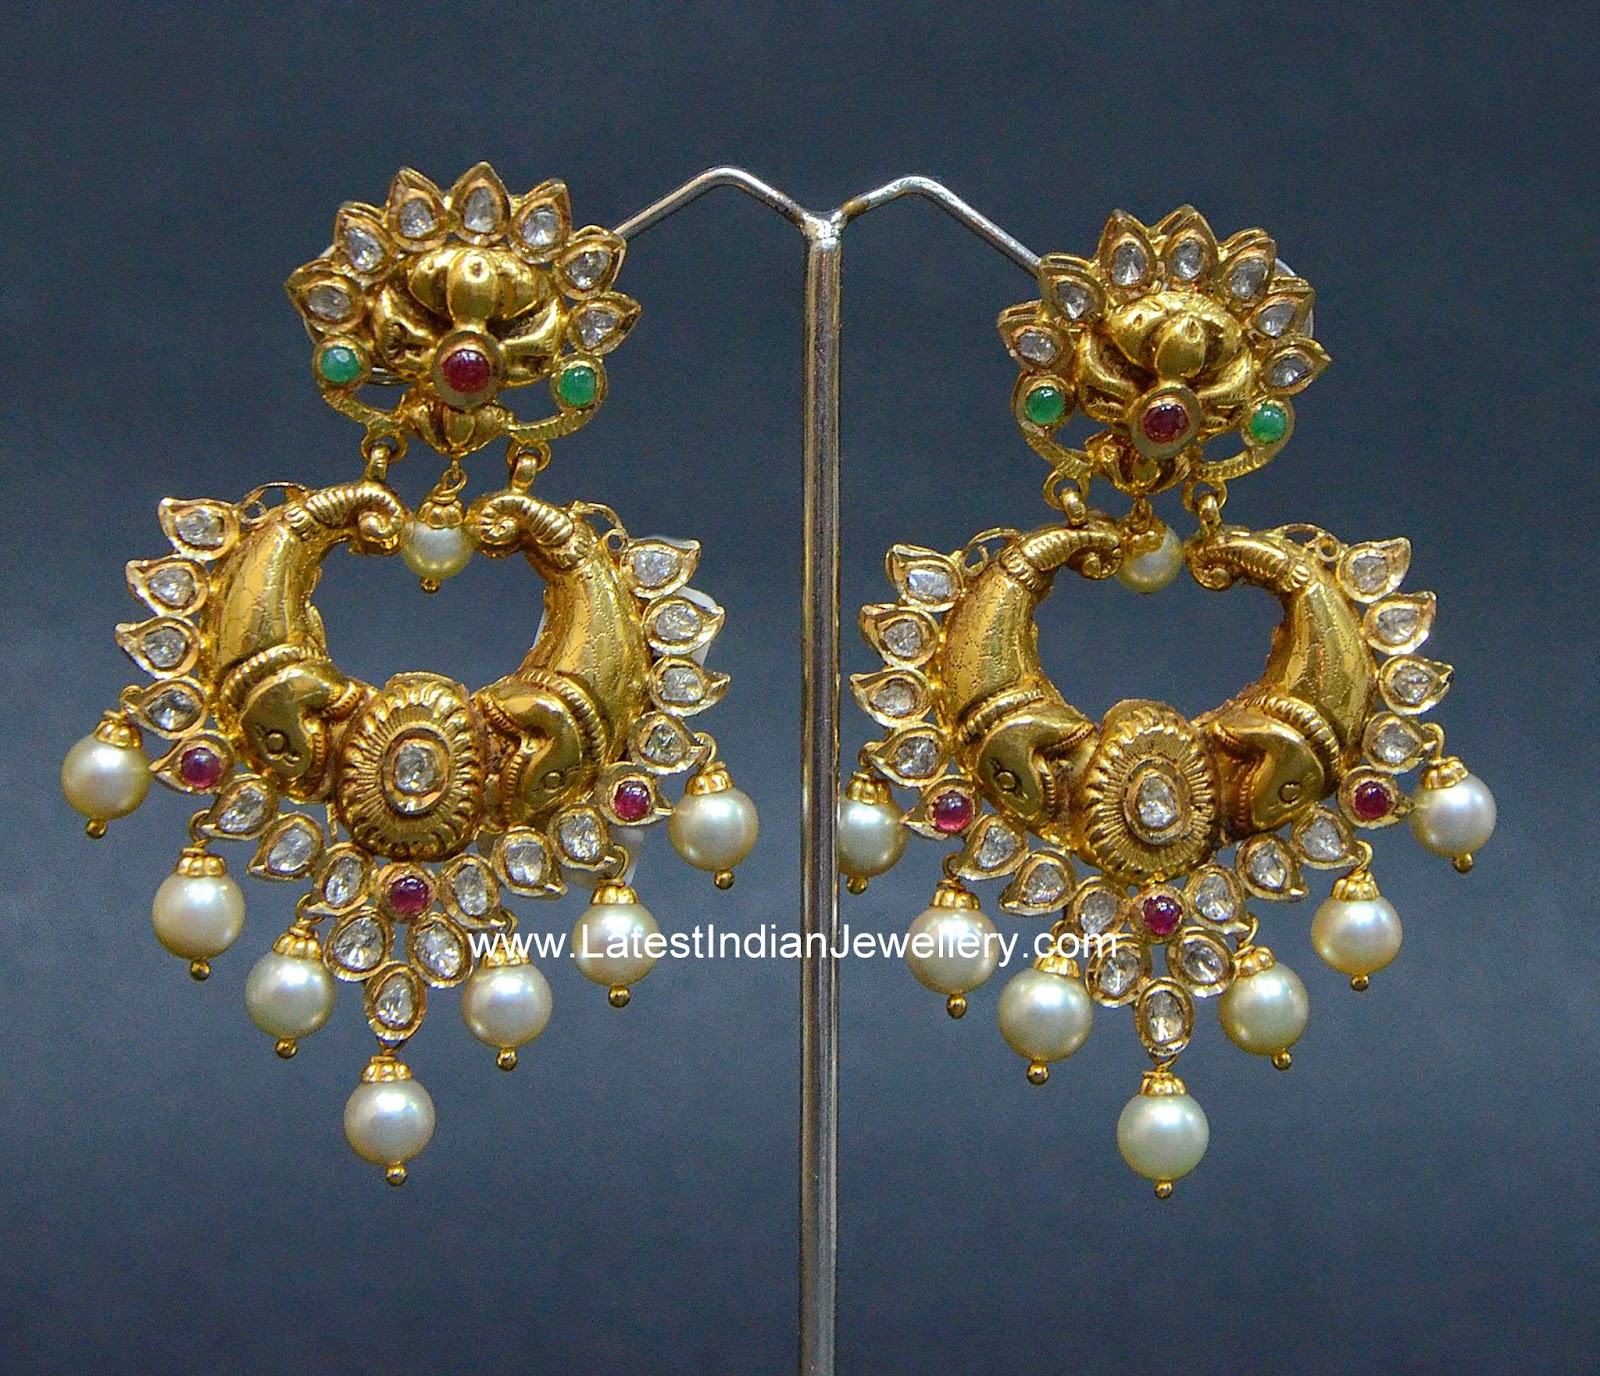 Temple Jewellery Nakshi ChandBali earrings